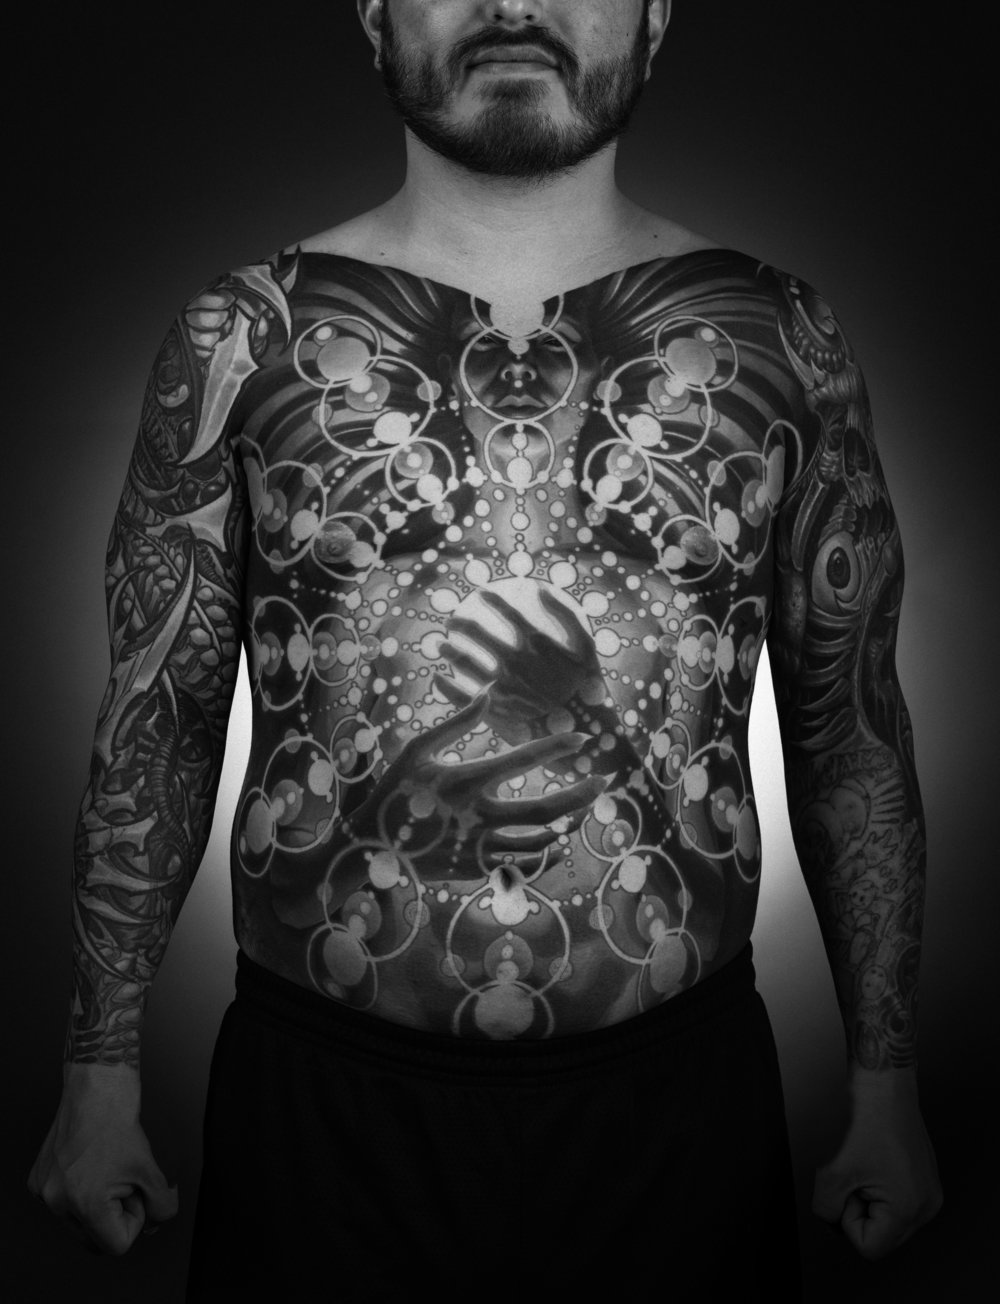 280 PAGES OF LAVISHLY DOCUMENTED TATTOOING - Longtime collaborator Max Dolberg exclusively photographed all the collectors in studio resulting in a uniformly documented body of work.